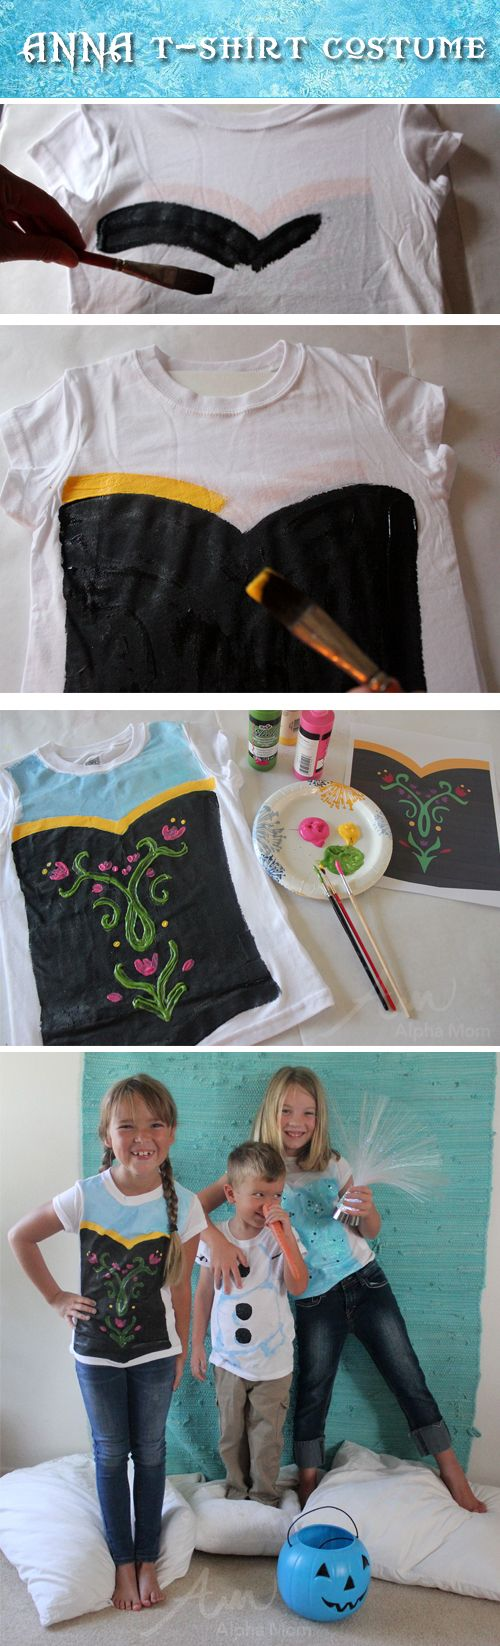 Anna from Frozen: Halloween Costume Tutorial by Brenda Ponnay for ...